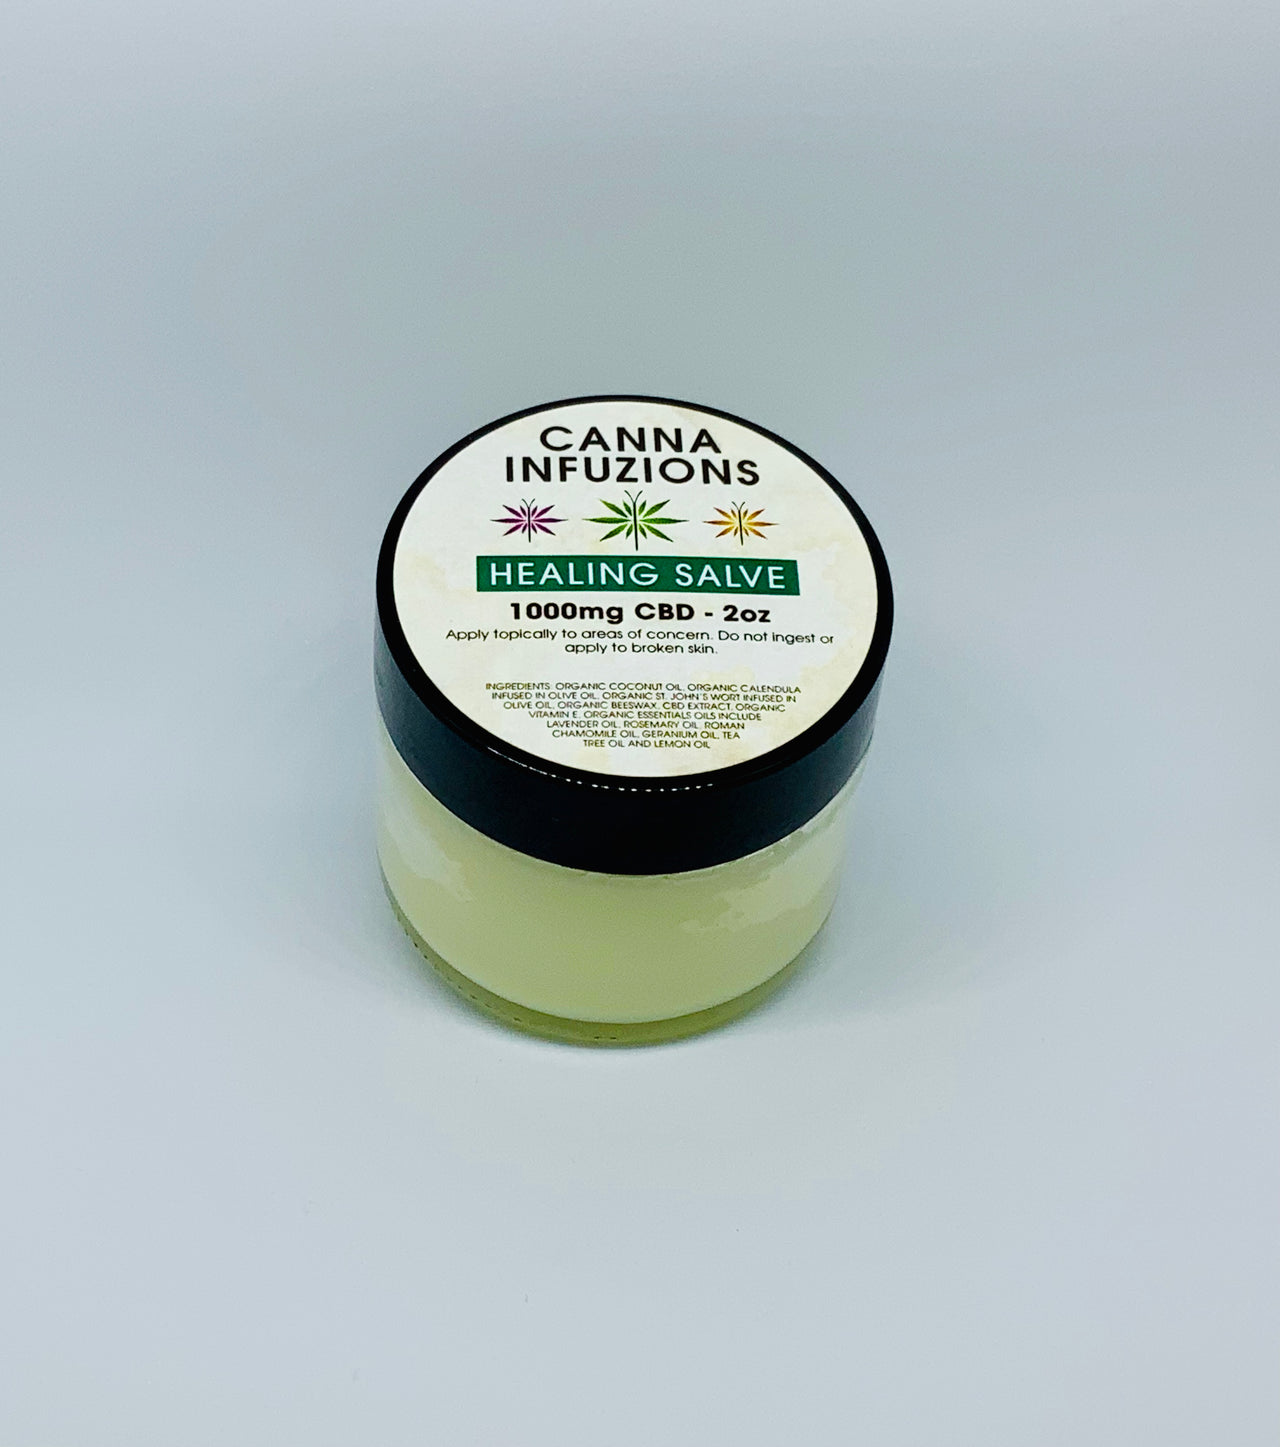 Canna Infuzions Healing Salve - Beyond Full Spectrum